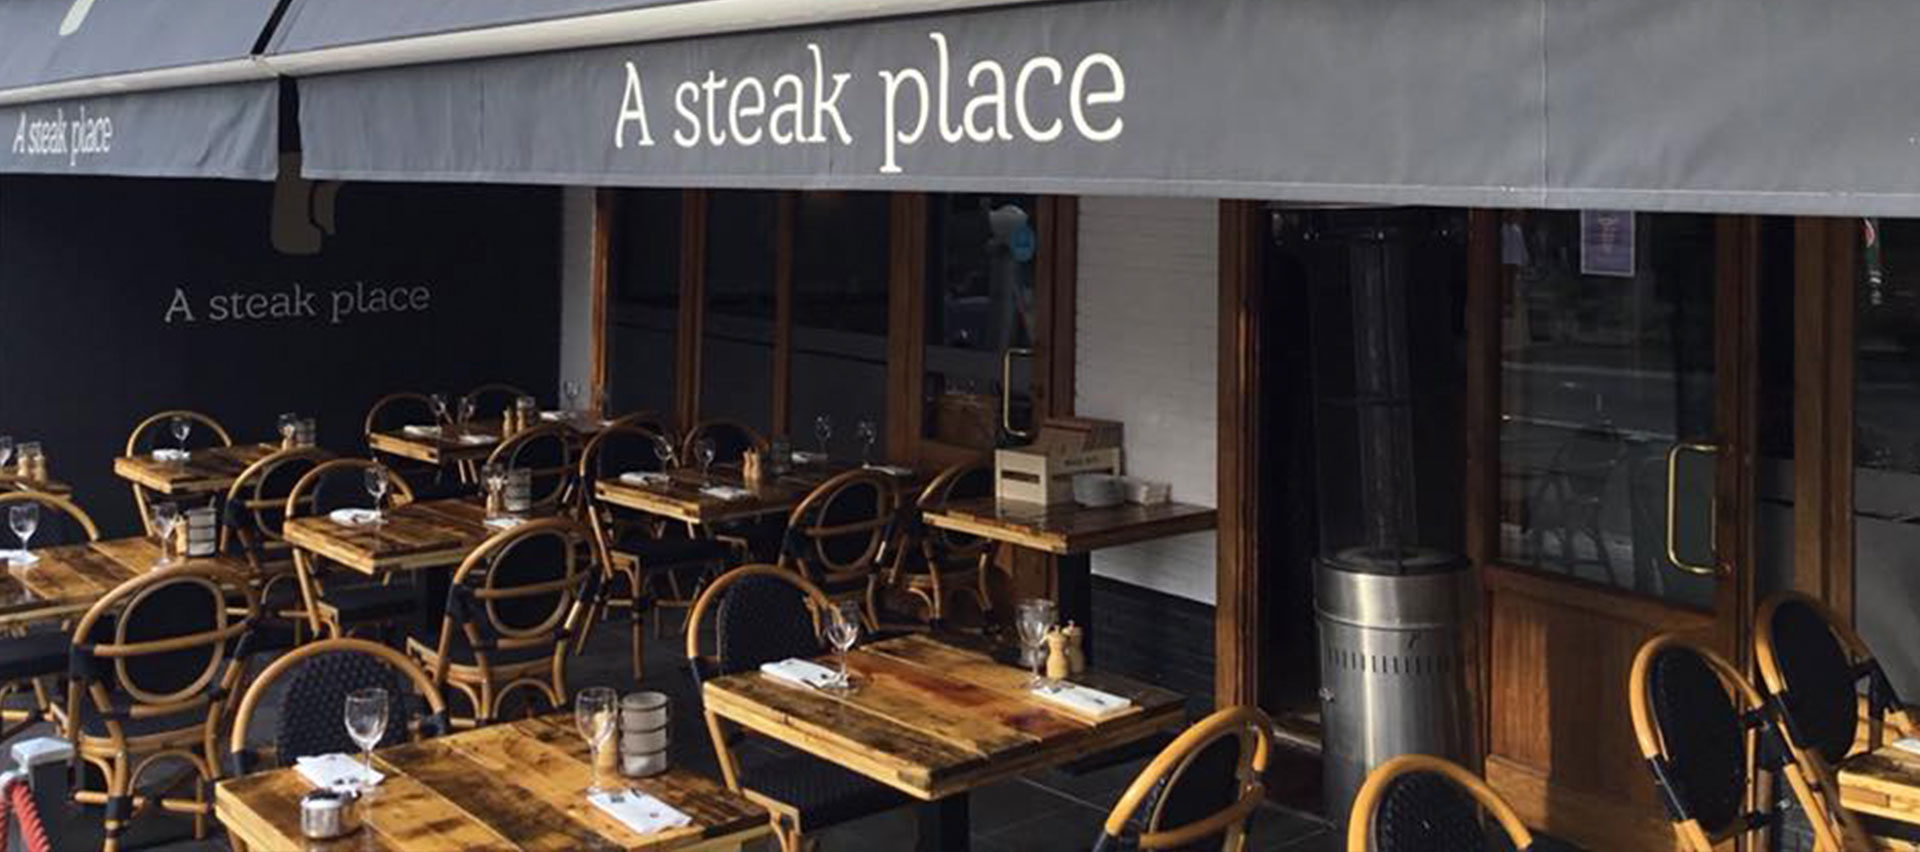 Moo Moo's - A steak place - Portals Nous